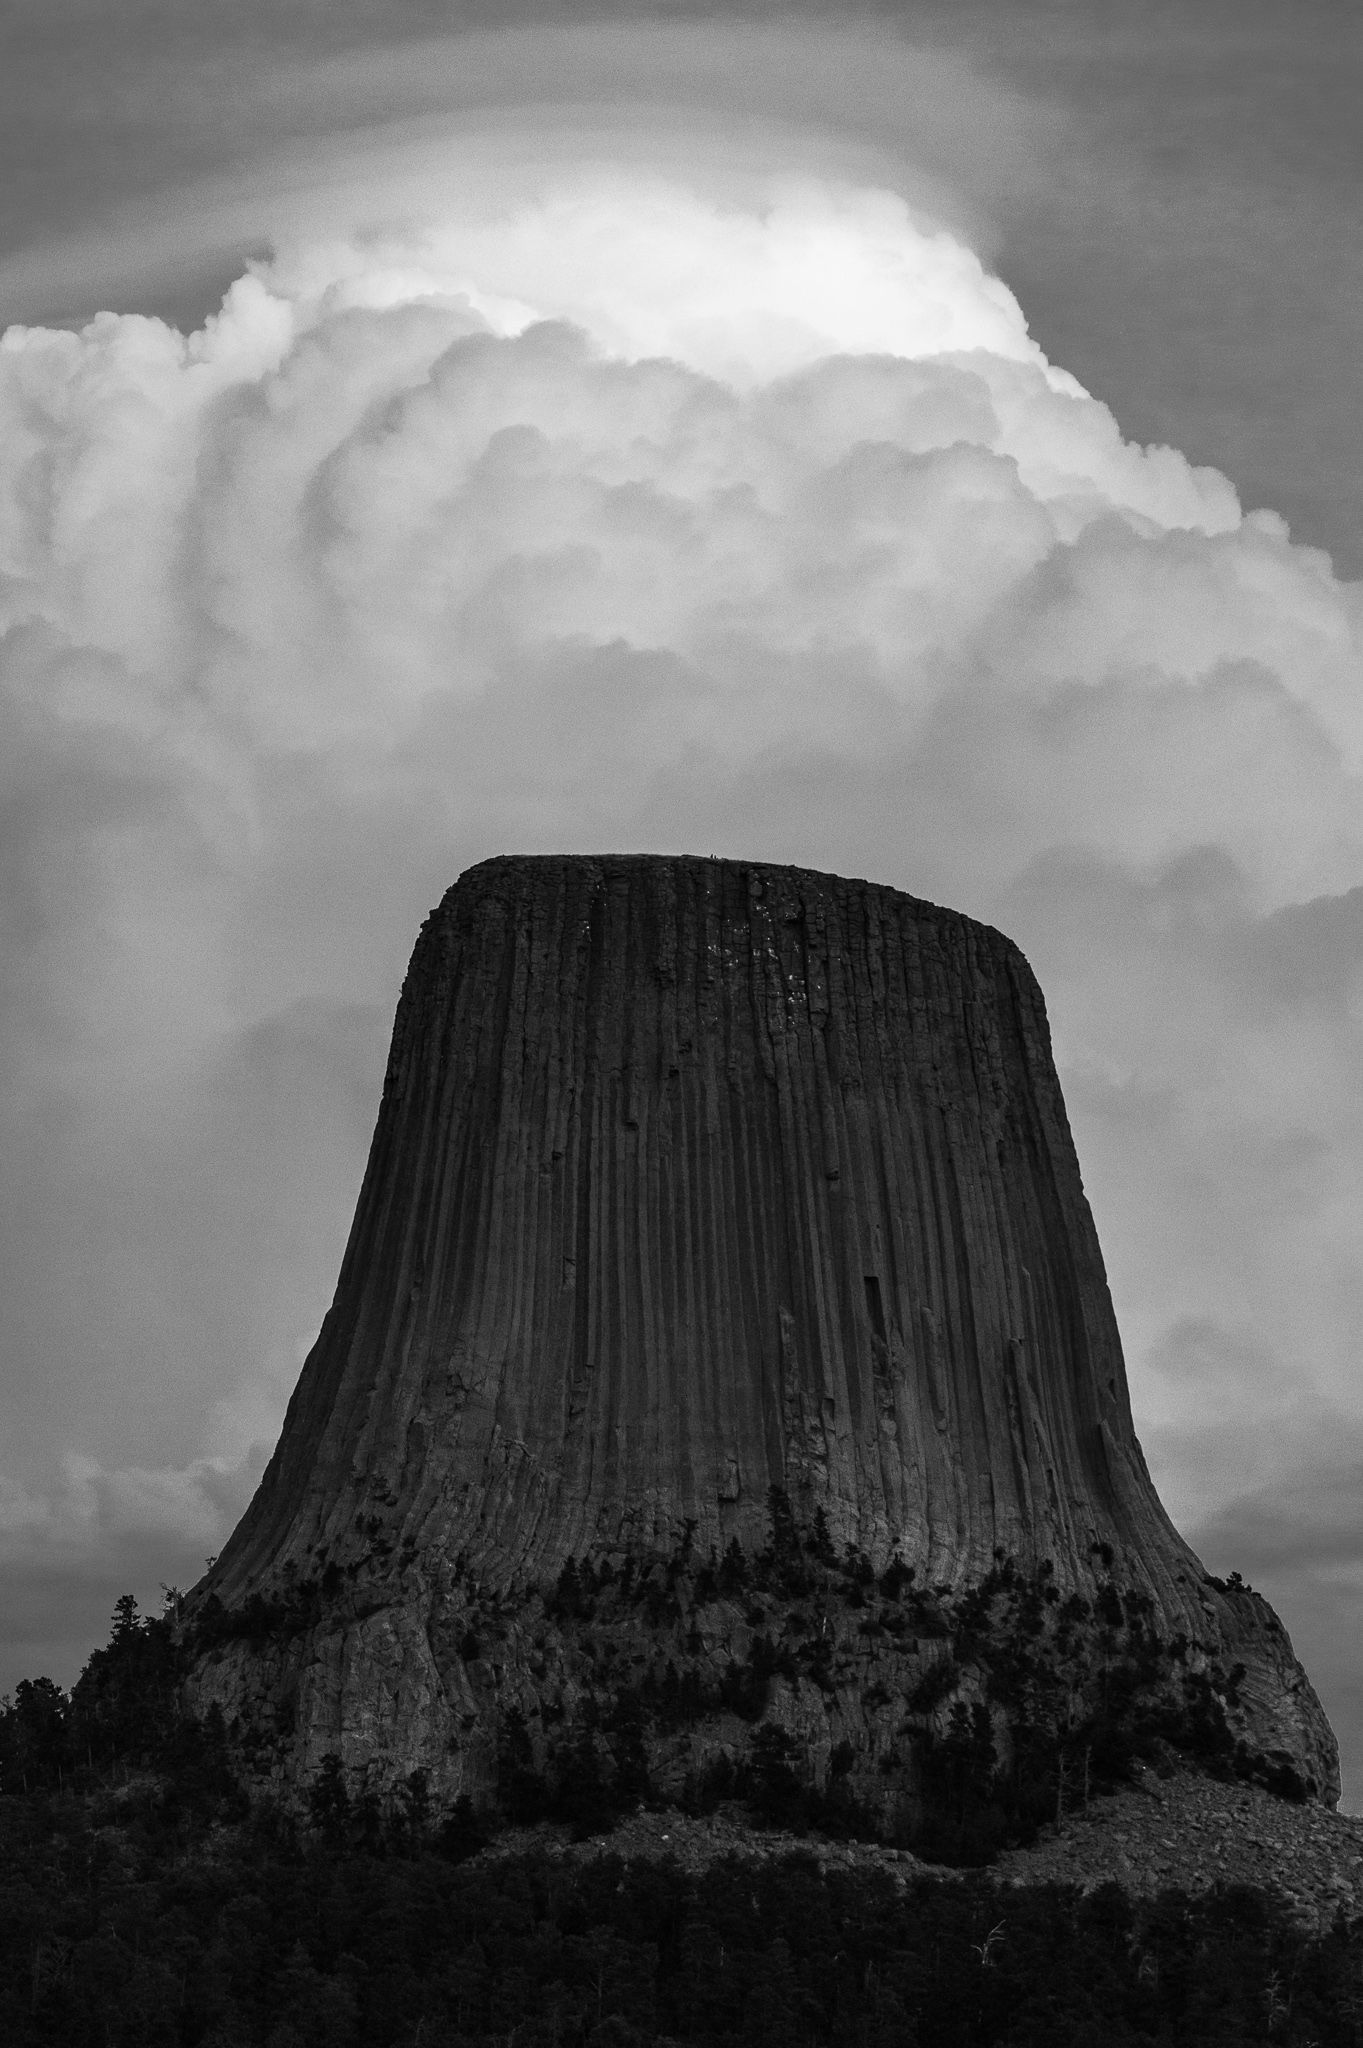 Introduction to black and white nature photography